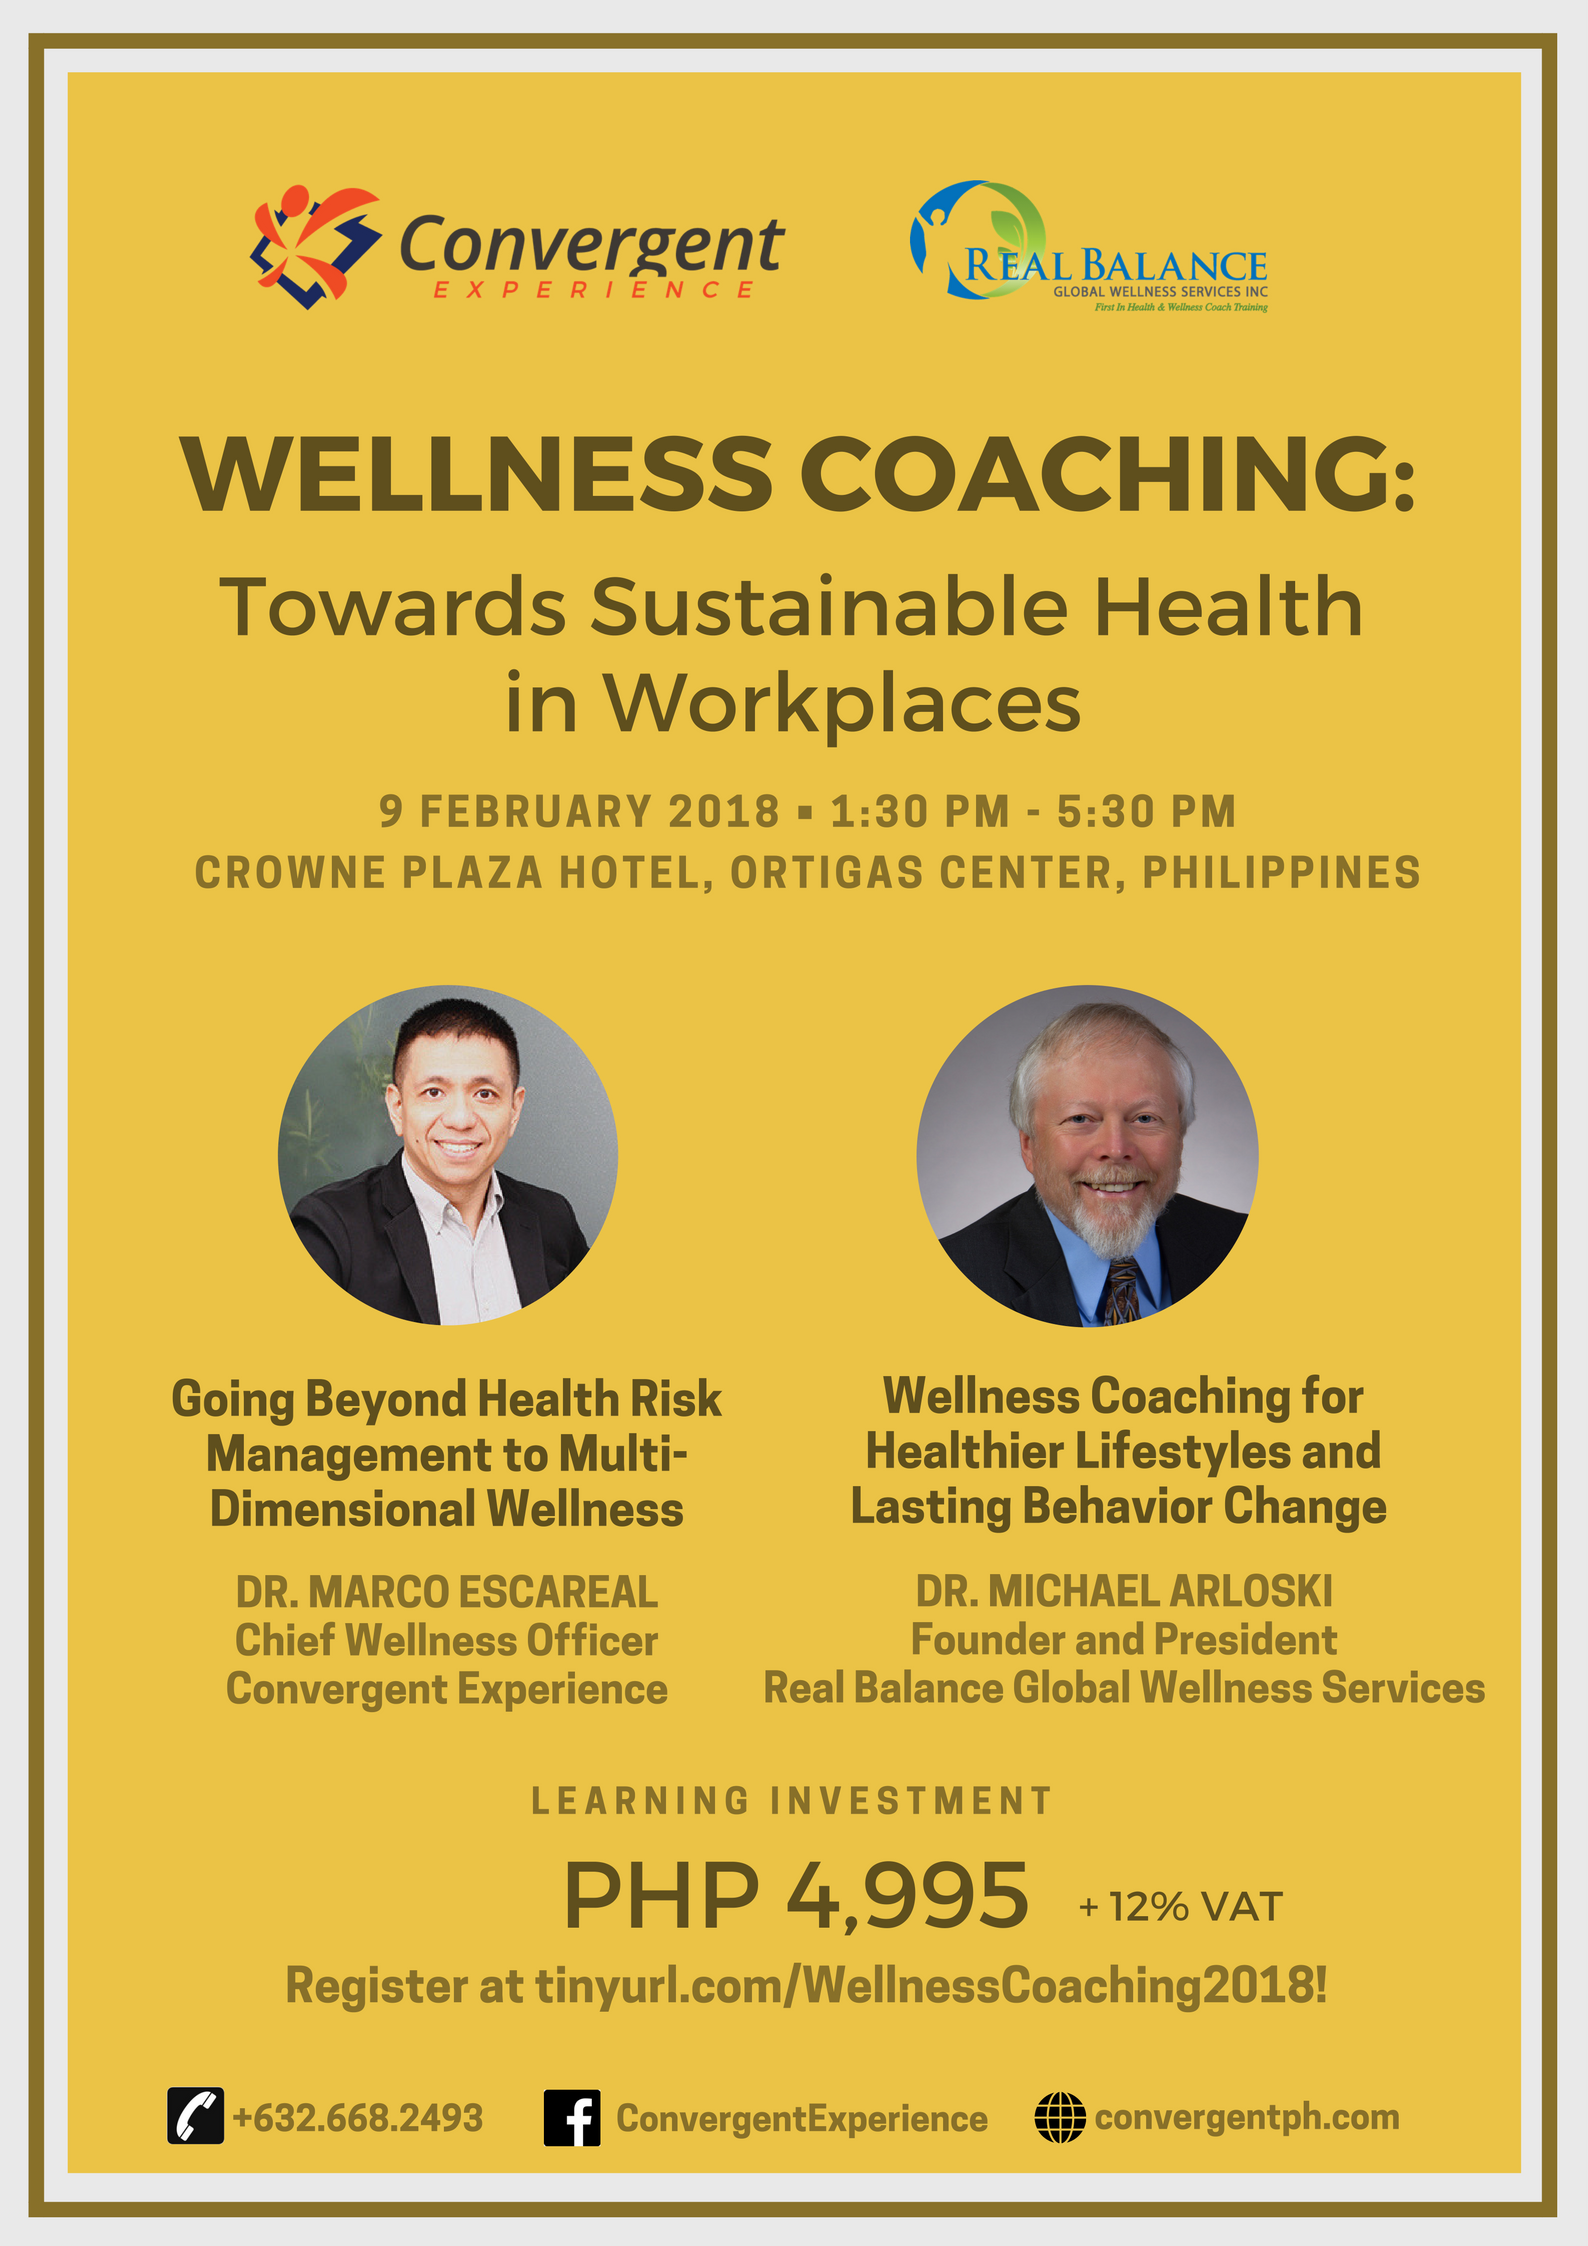 Wellness Coaching Towards Sustainable Health In Workplaces